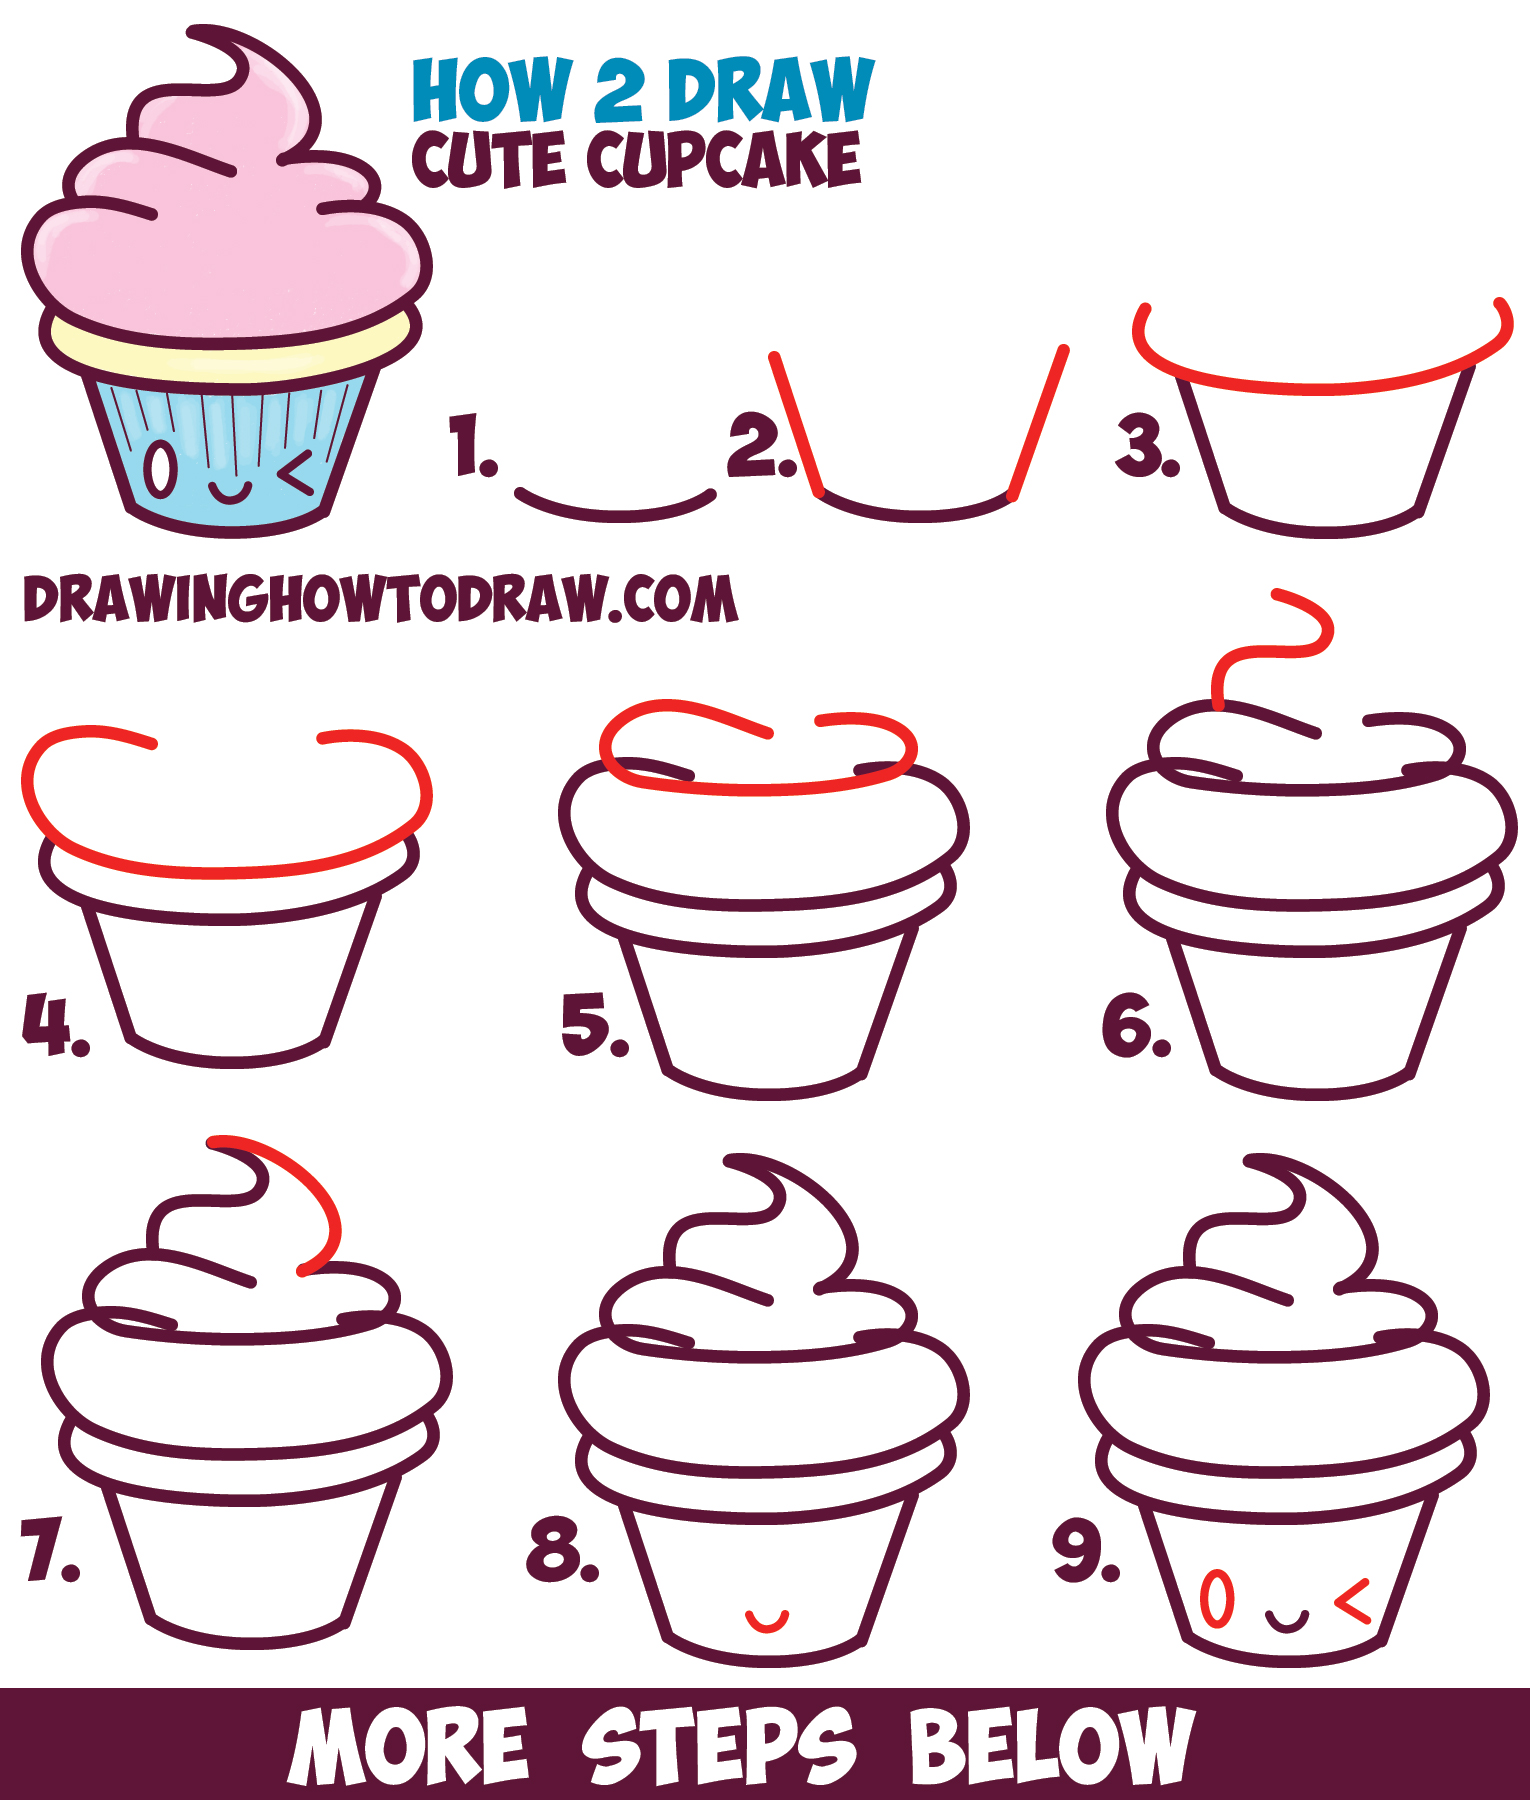 How To Draw Cute Kawaii Cupcake With Face On It Easy Step By Step